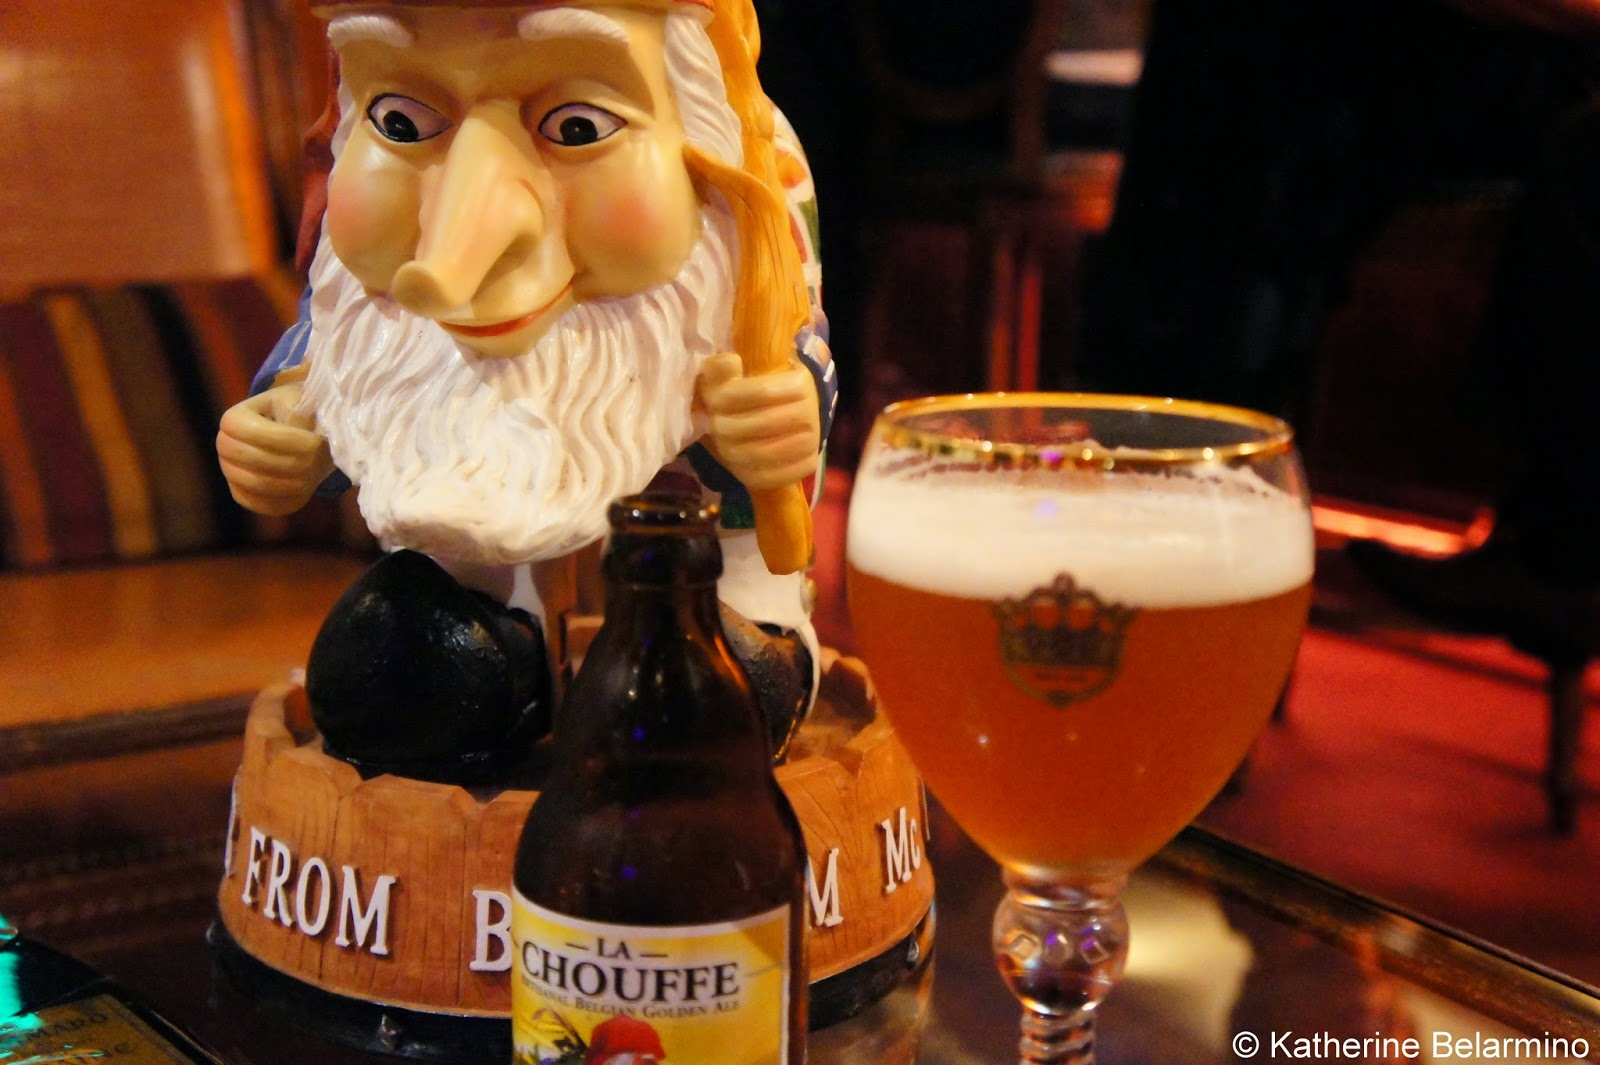 La Chouffe Belgian Beer at Patrick's Bar Vin New Orleans